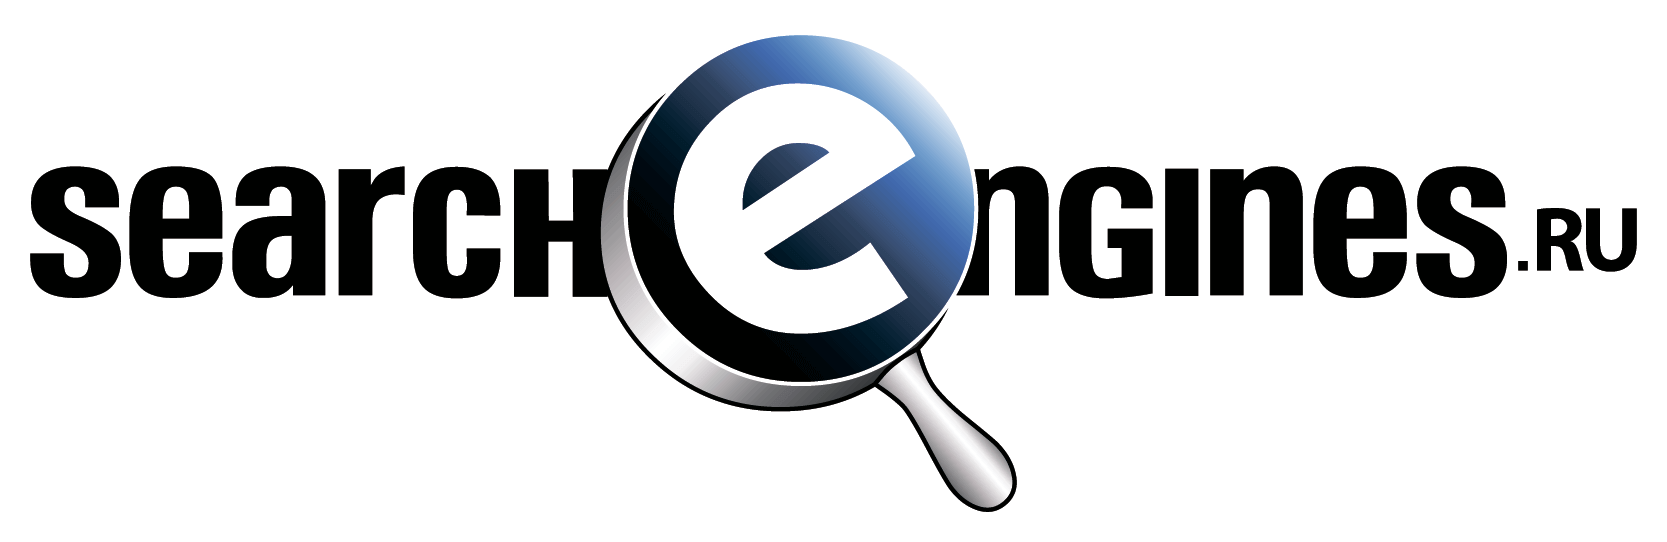 Searchengines logo